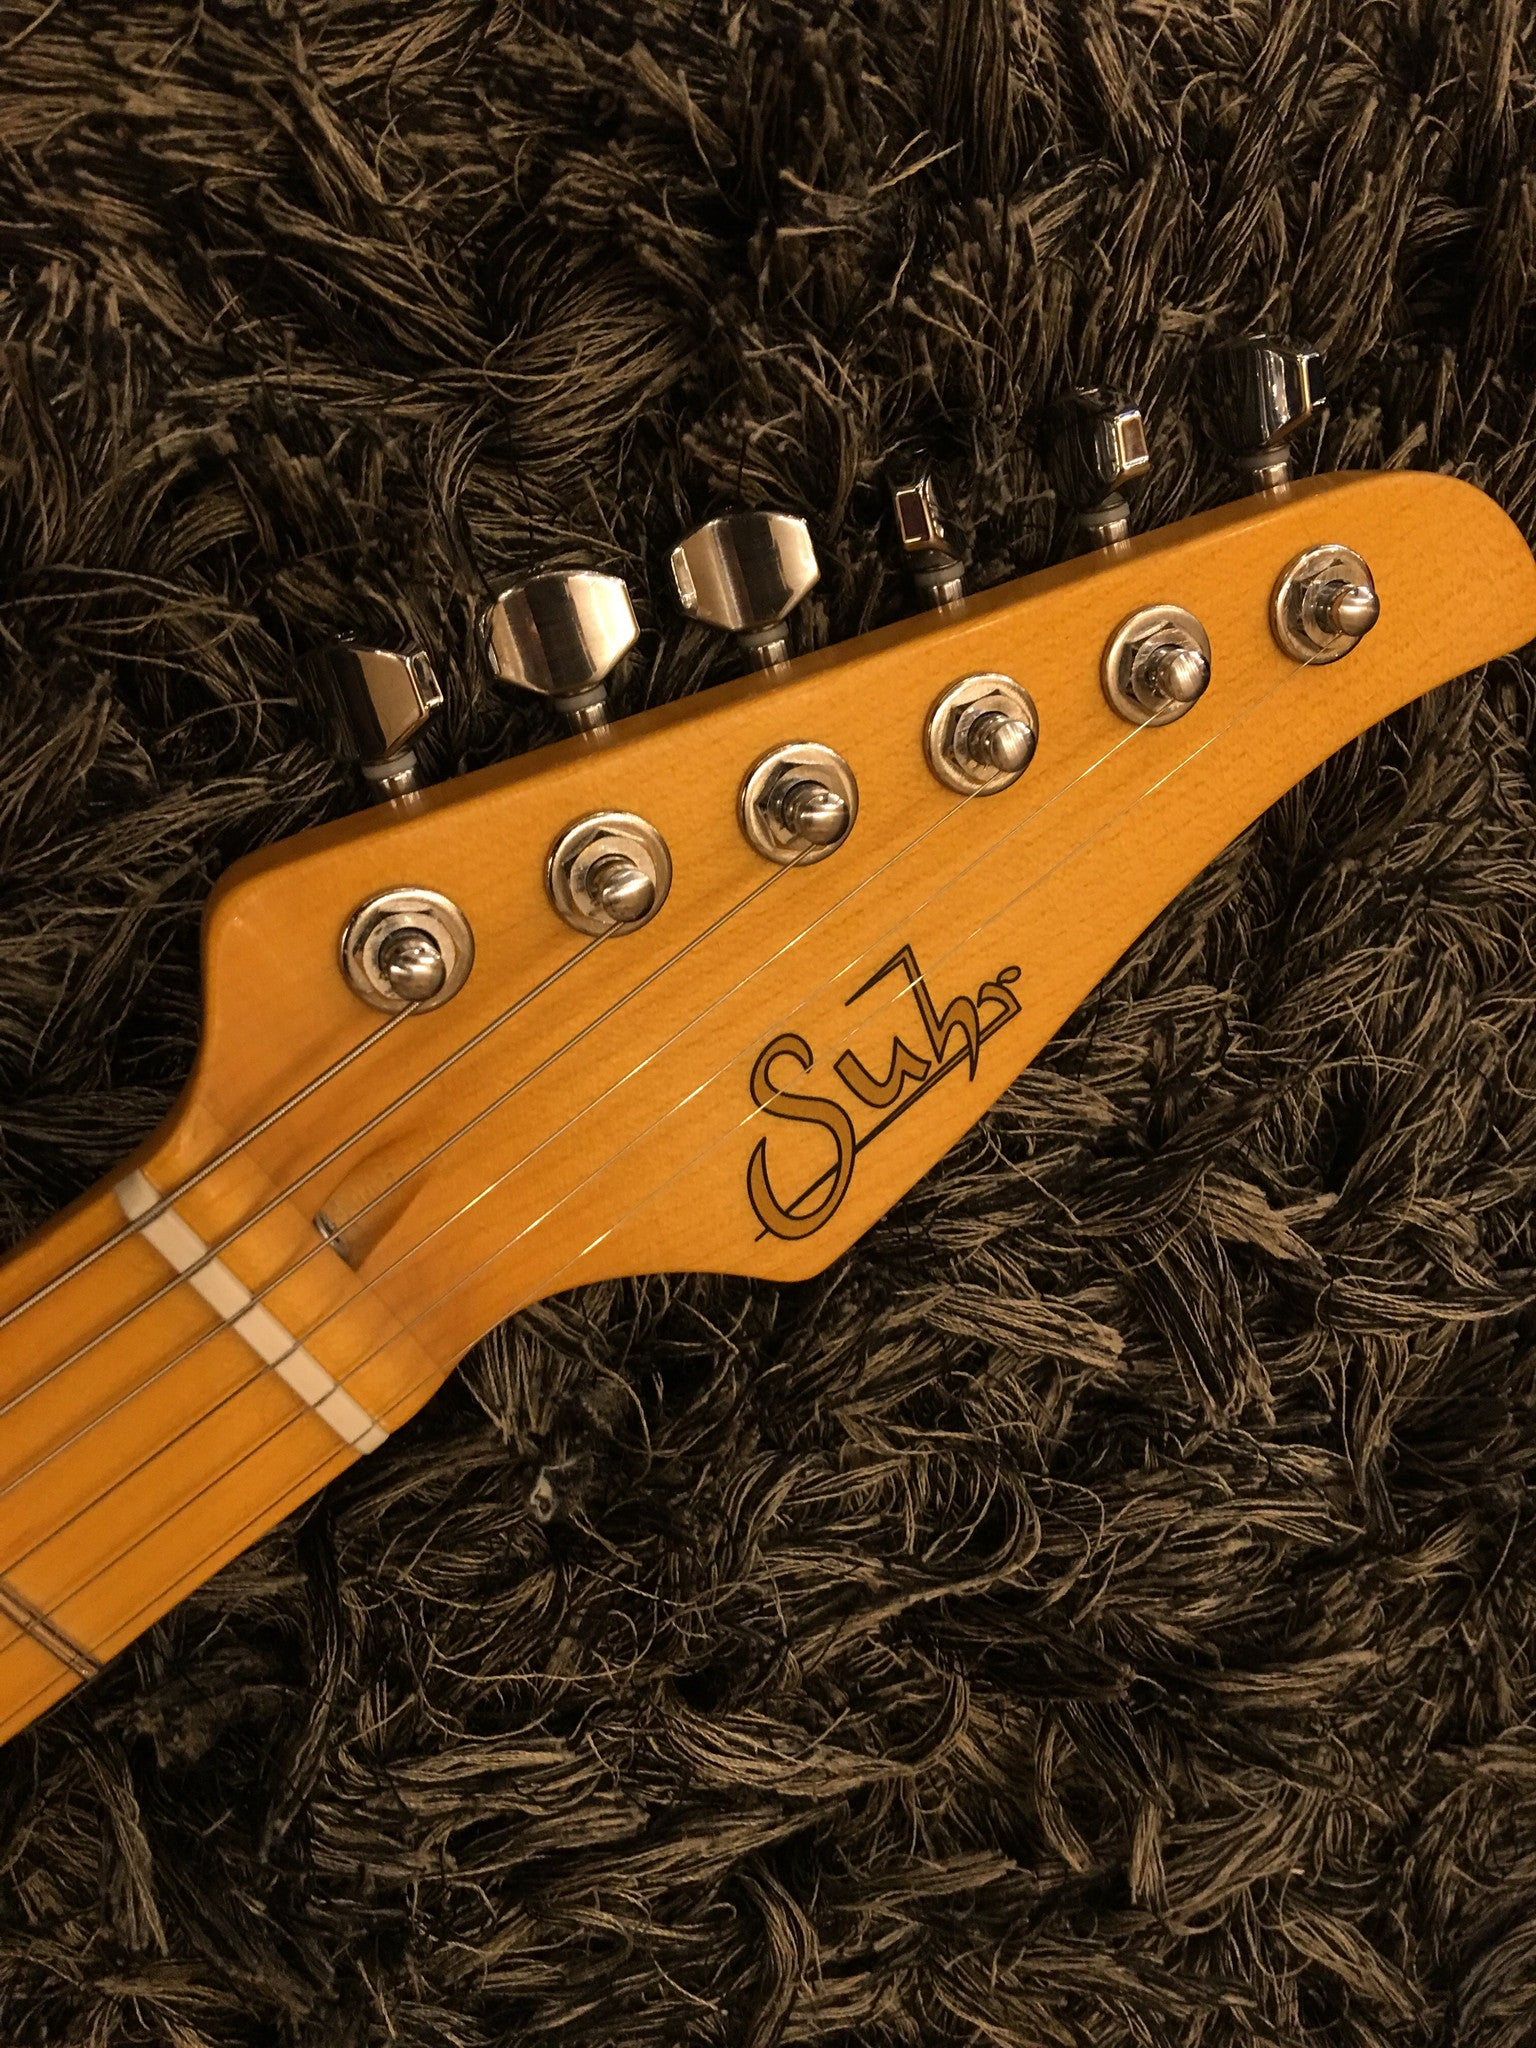 Suhr Classic Antique, 3 Tone Burst Maple fingerboard, HSS - HIENDGUITAR   SUHR GUITAR